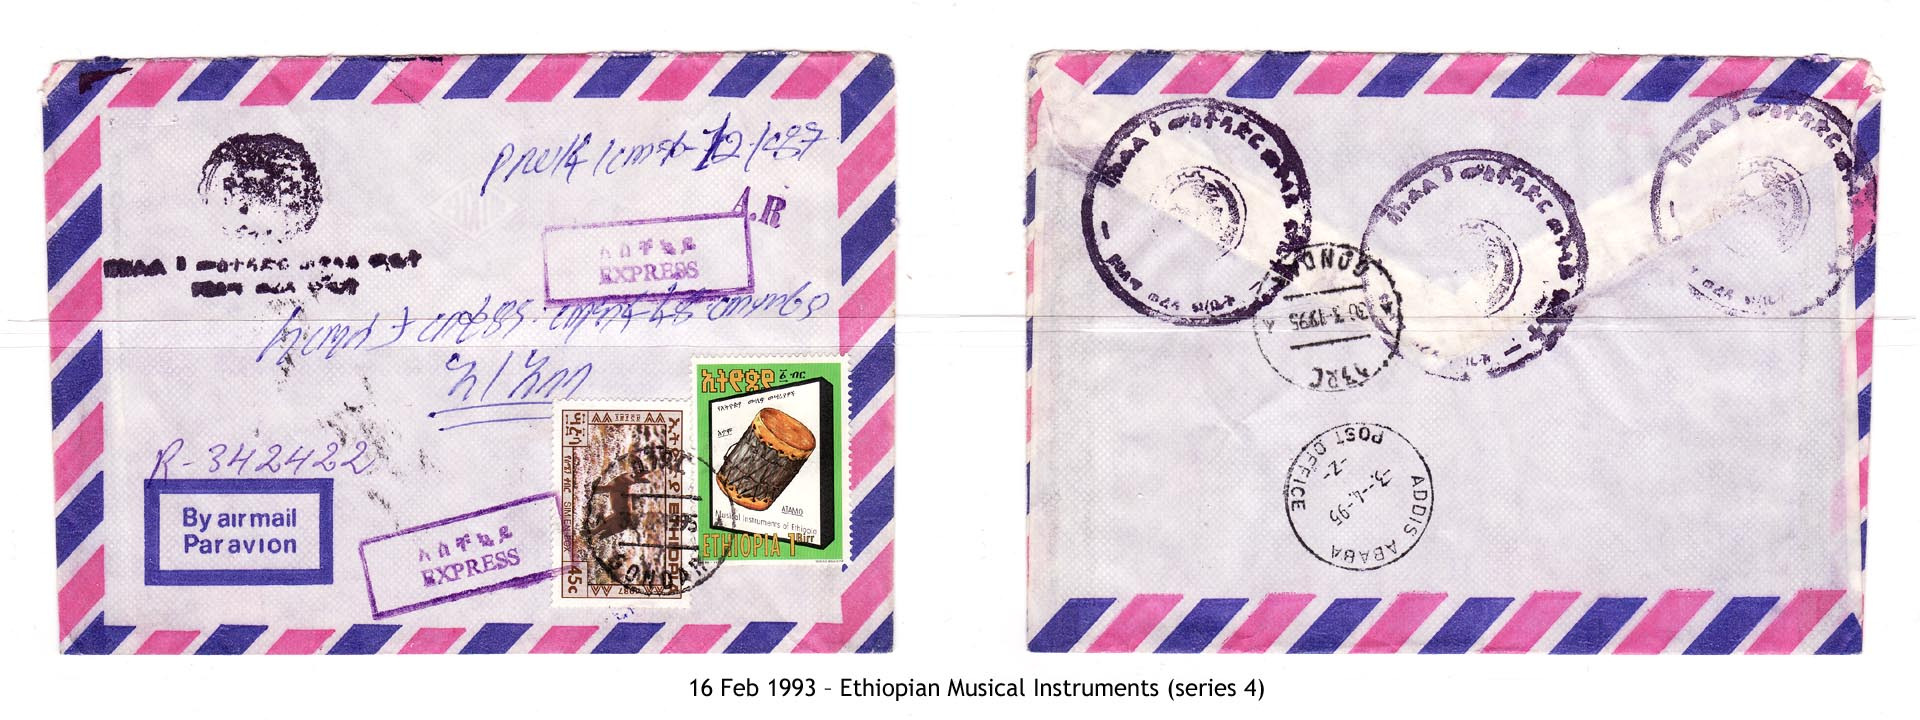 19930216 – Ethiopian Musical Instruments (series 4)